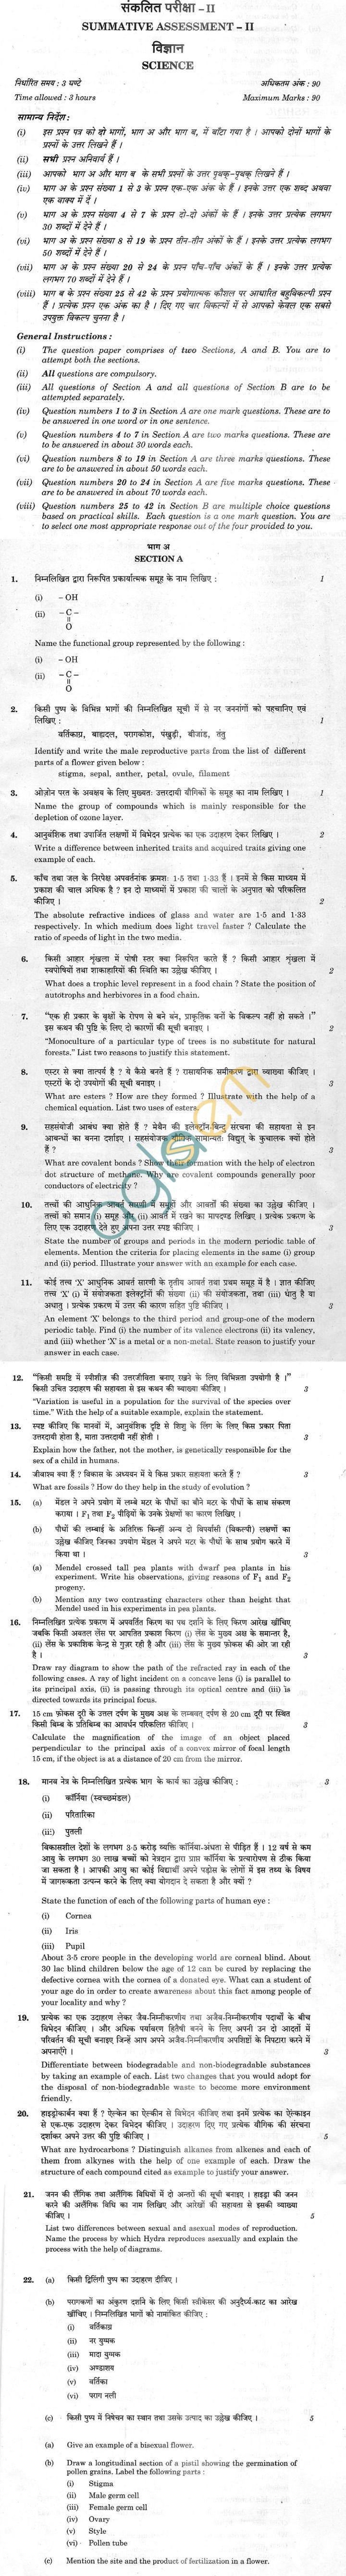 Cbse board exam class 10 sa2 sample question paper science print central board of secondary education board exam sample question paper for class 10 are given here cbse class x science sample paper gives an idea of malvernweather Images